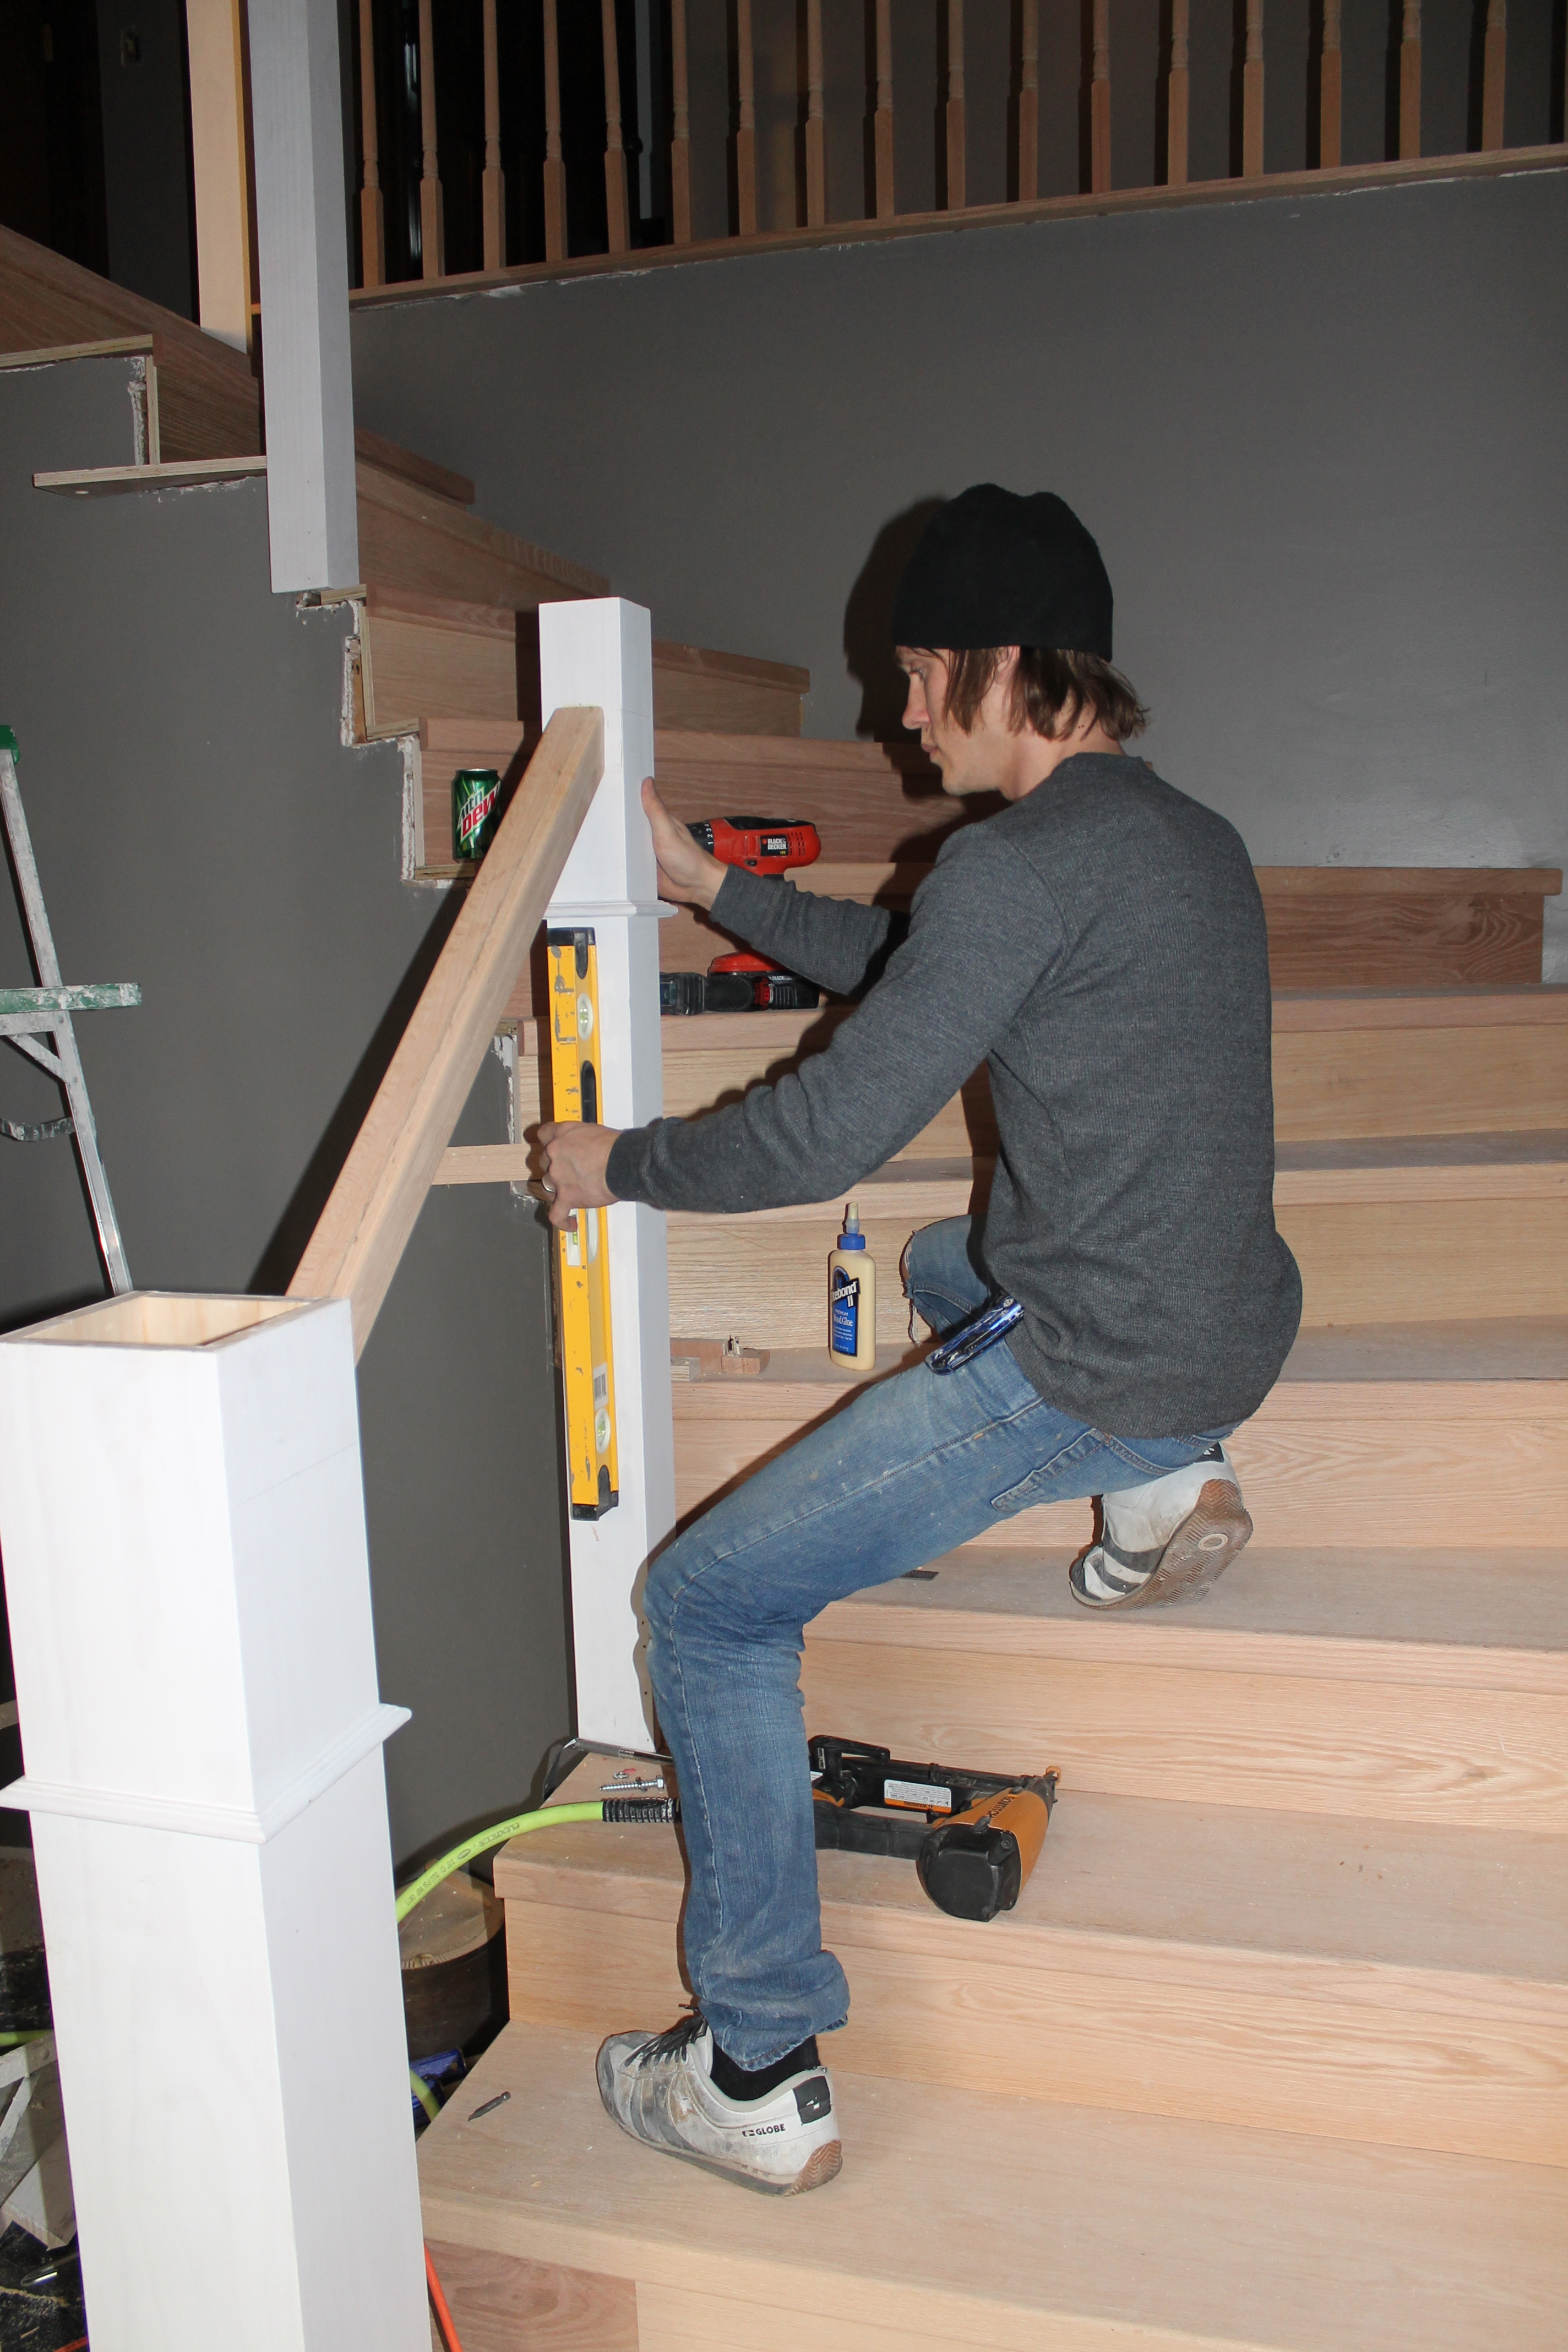 Build And Install A New Wood Stair Handrail   Construction2Style Via  @Remodelaholic